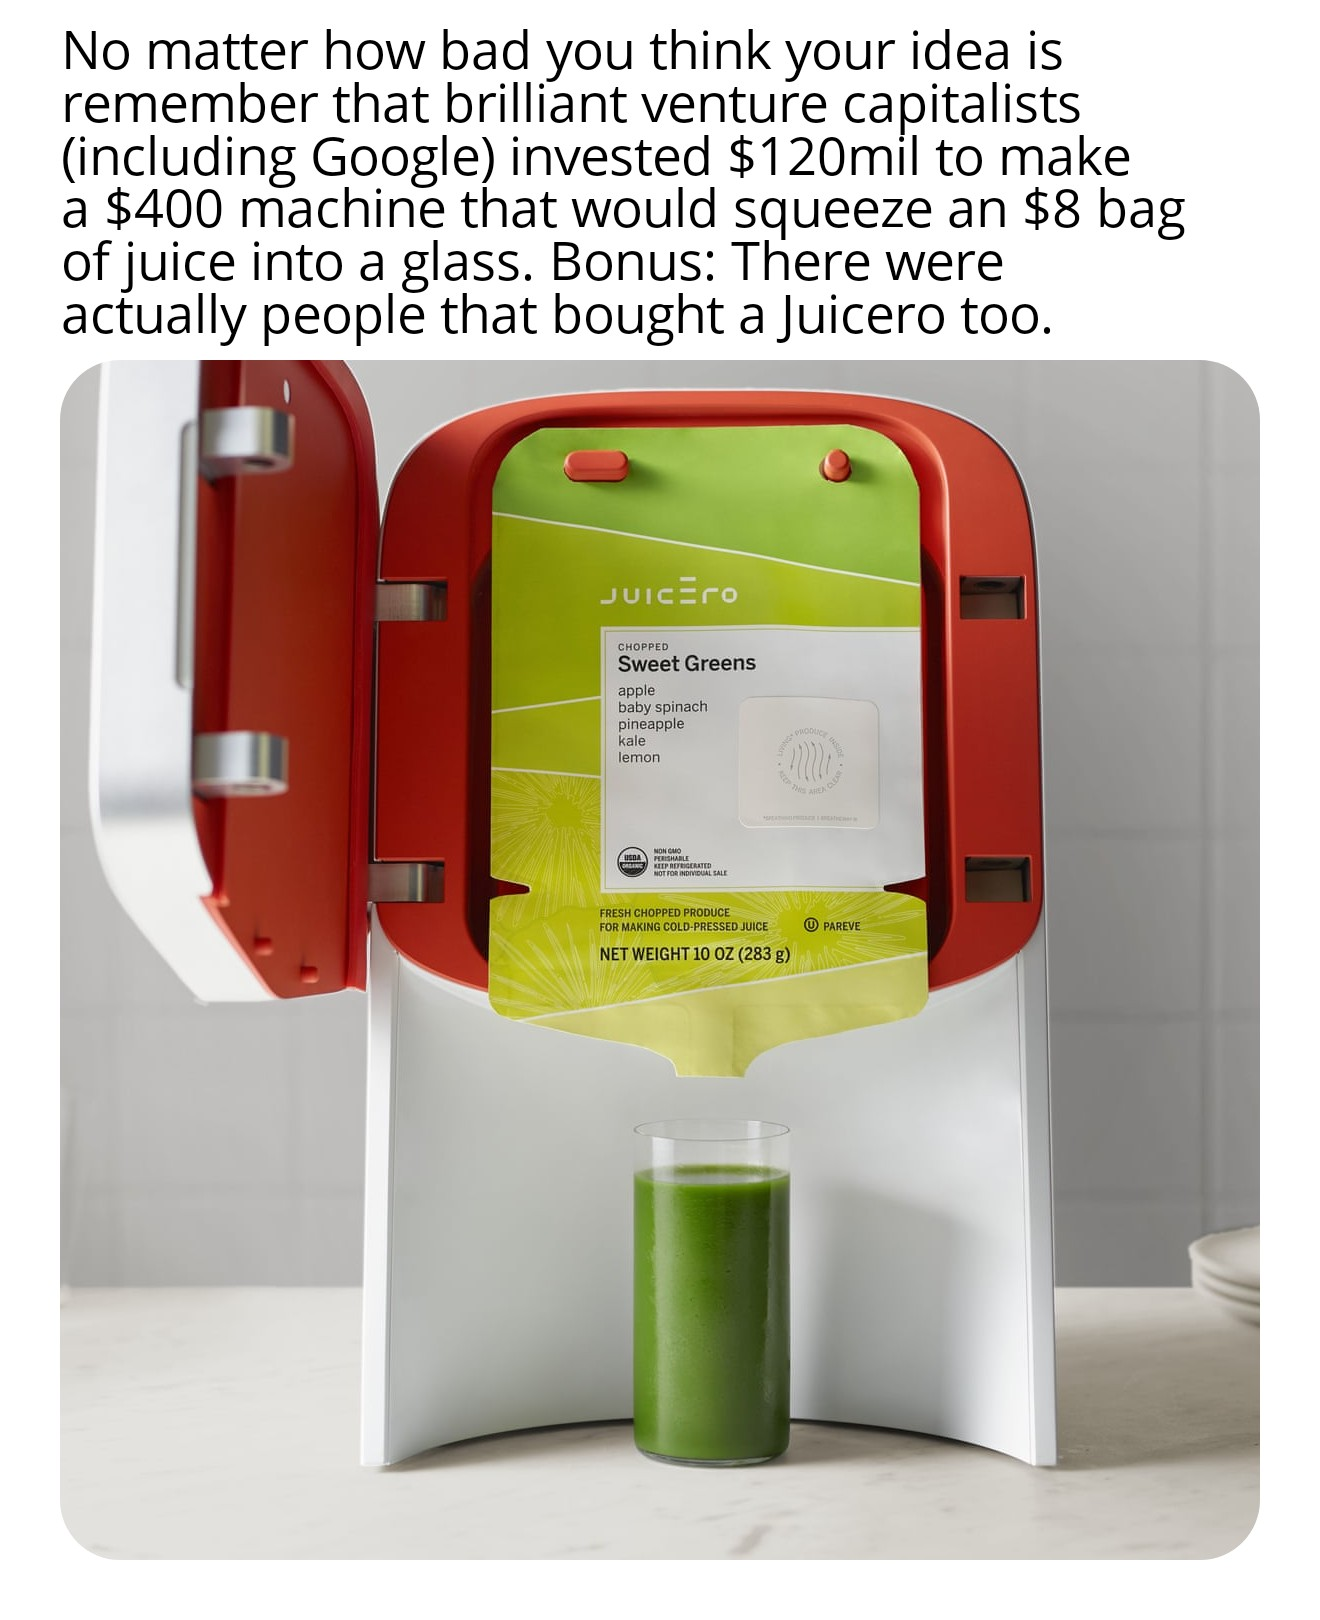 [Image] I don't know what your idea is, but it's better than a Juicero